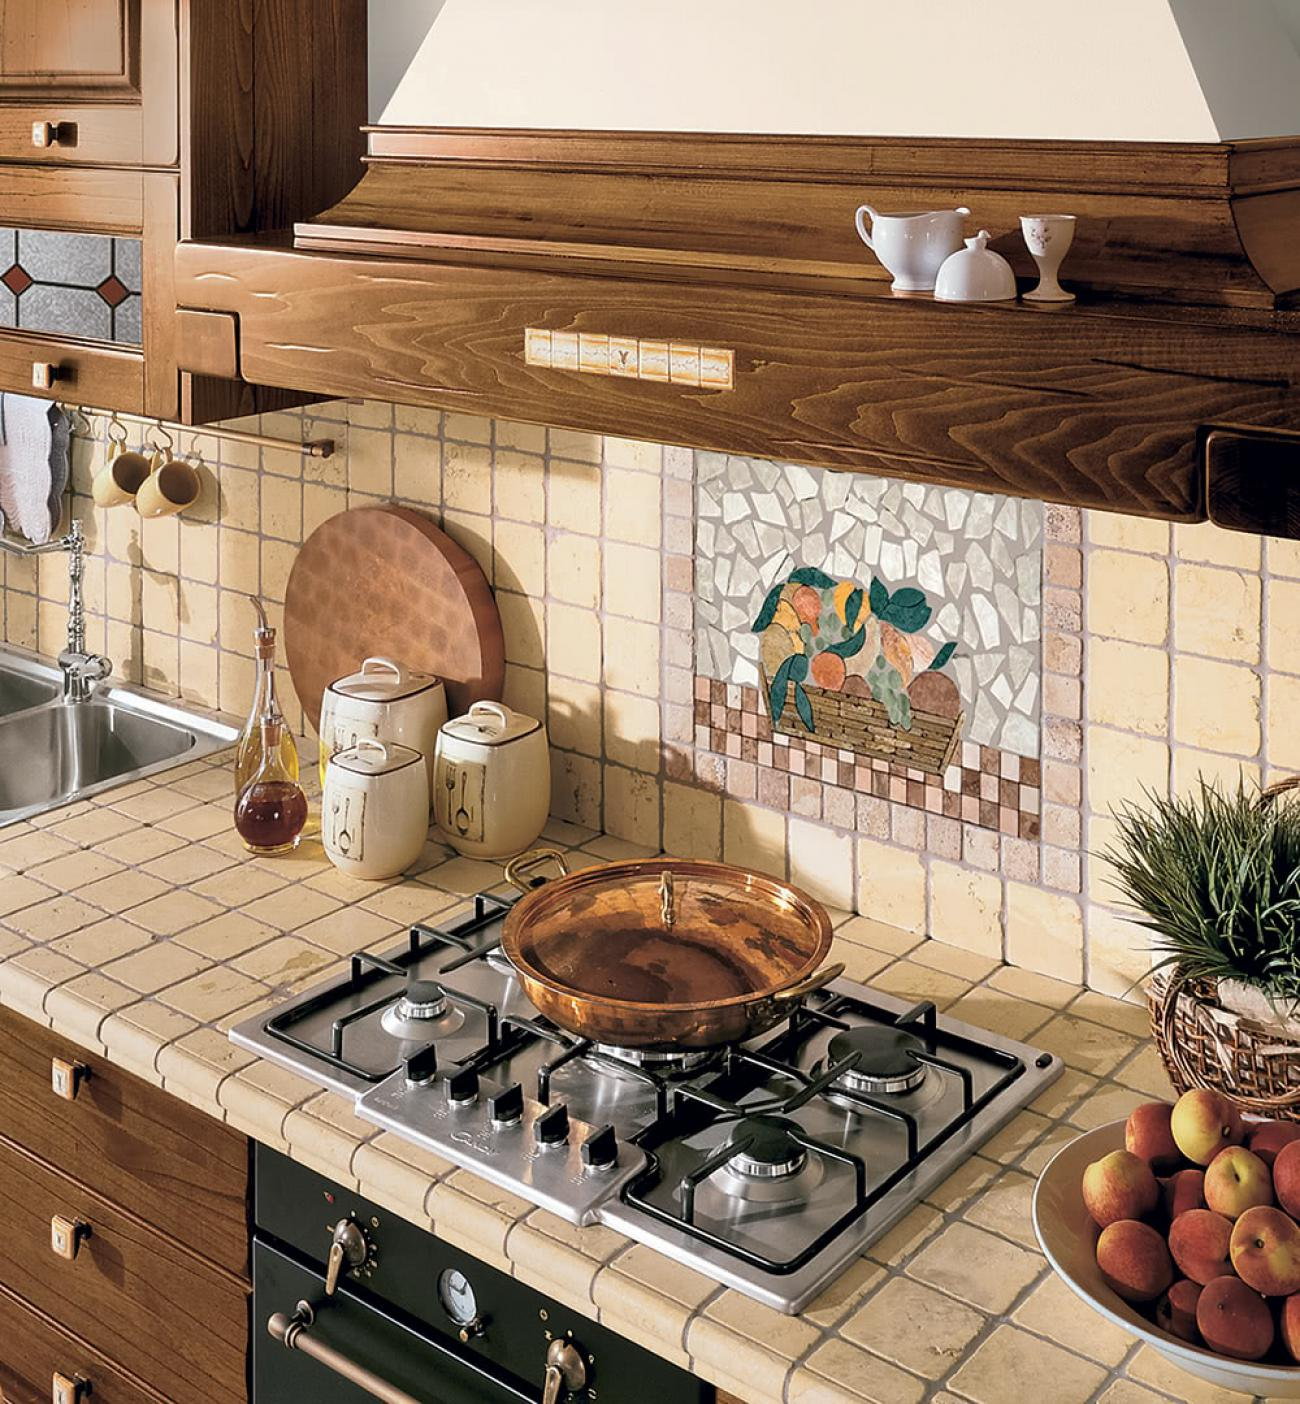 Classic Kitchens - Laura - 11